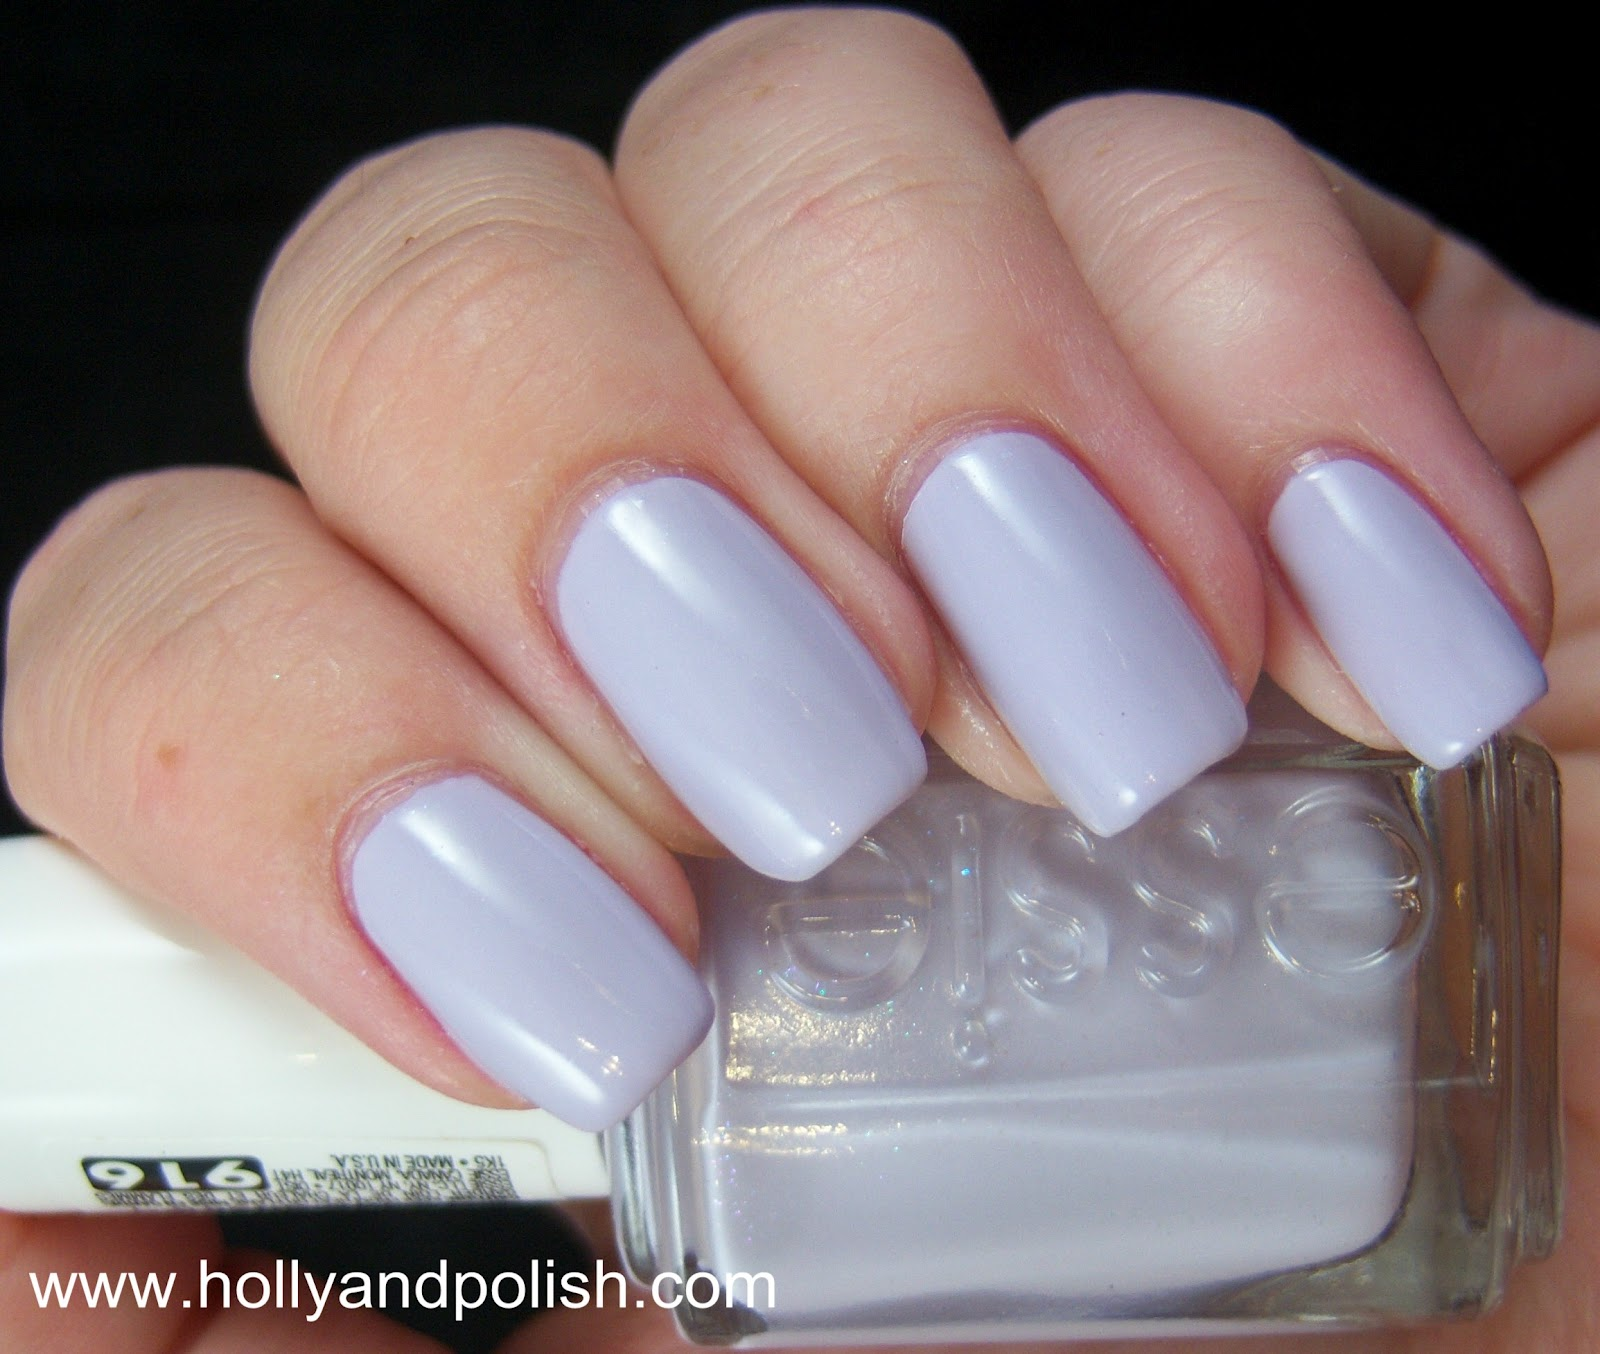 Where Can I Buy Essie Nail Polish | Hession Hairdressing